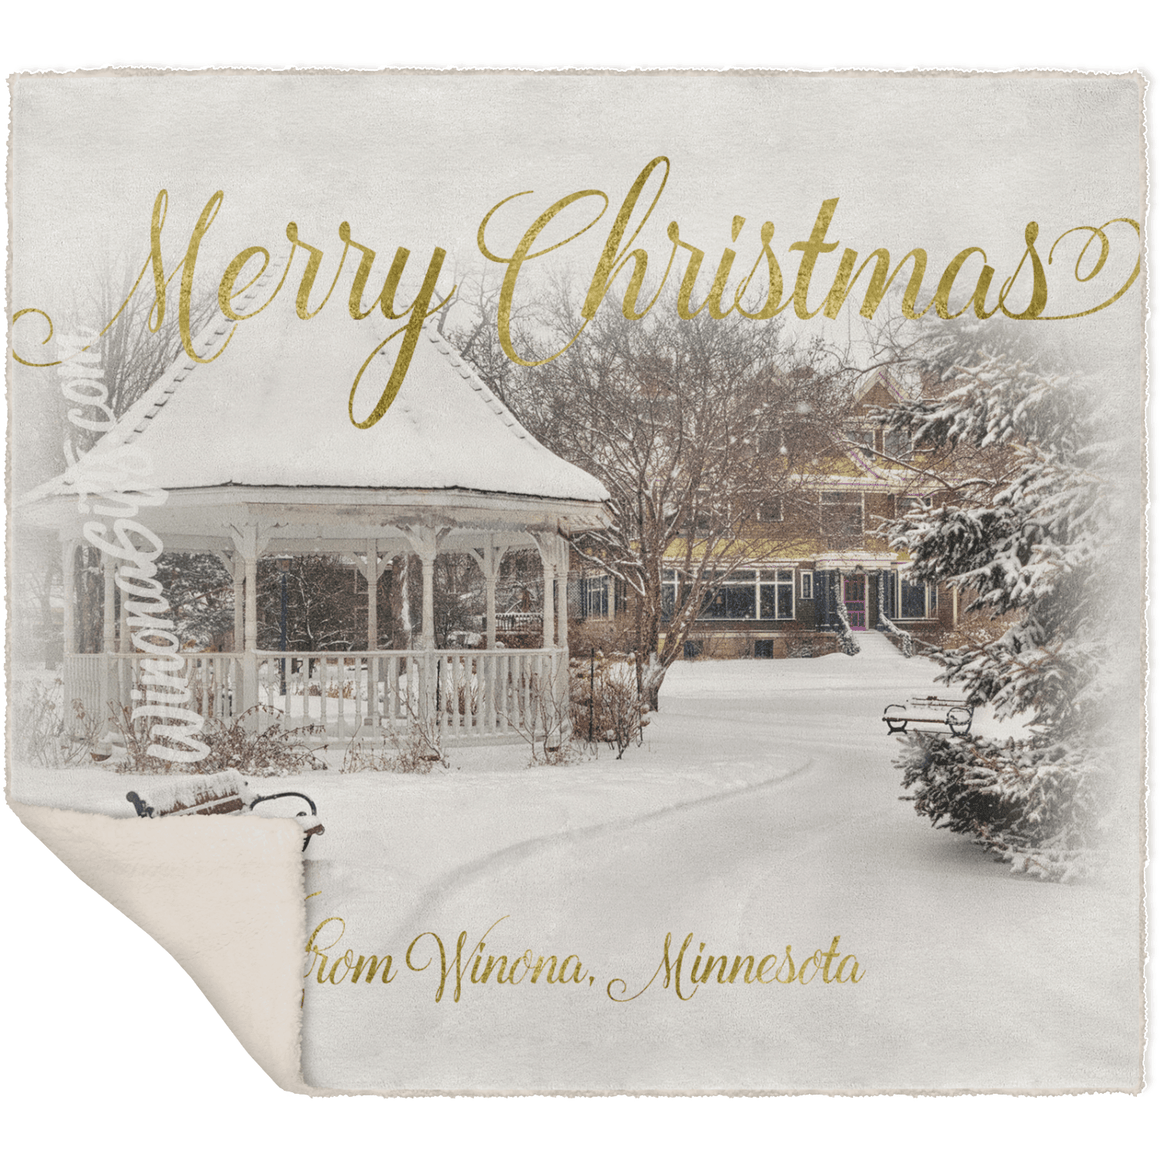 Blanket, Fleece Sherpa, Merry Christmas Winona Minnesota Gazebo - Kari Yearous Photography WinonaGifts KetoGifts LoveDecorah